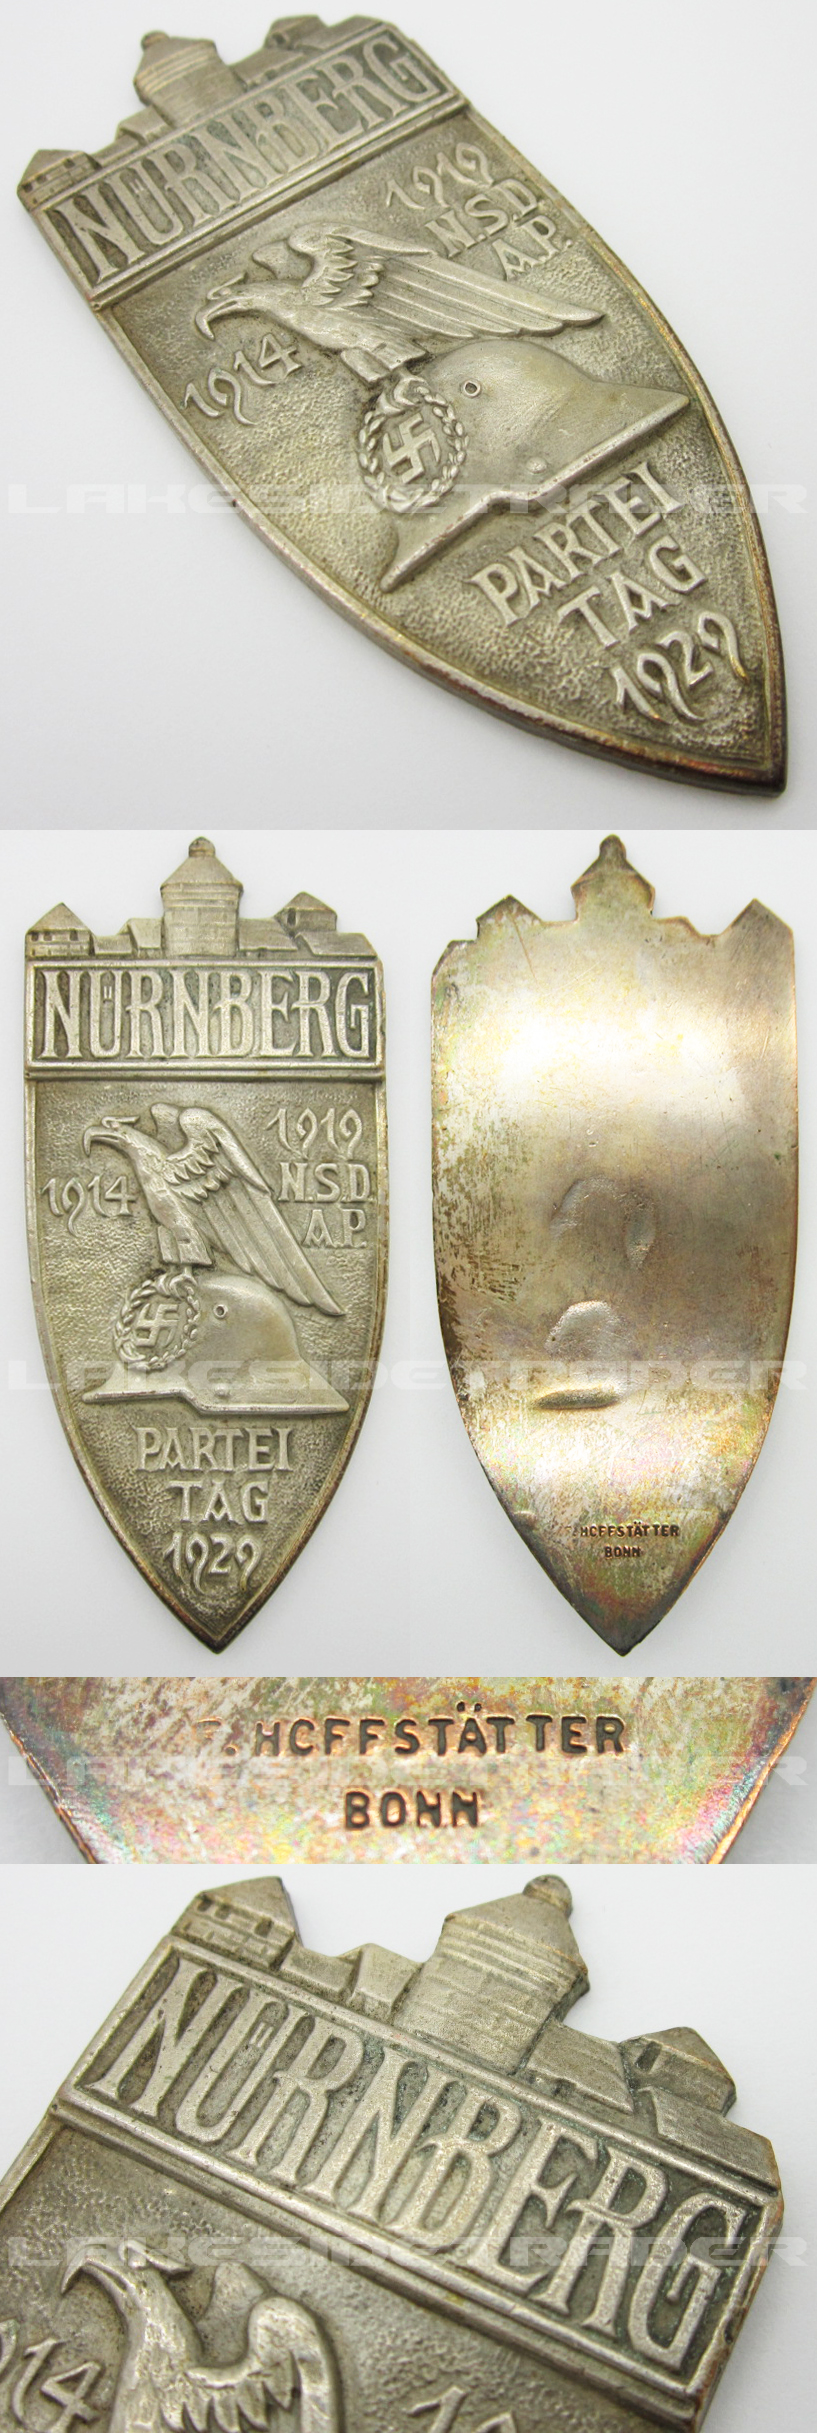 NSDAP Nuremburg Party Rally Medallion 1929